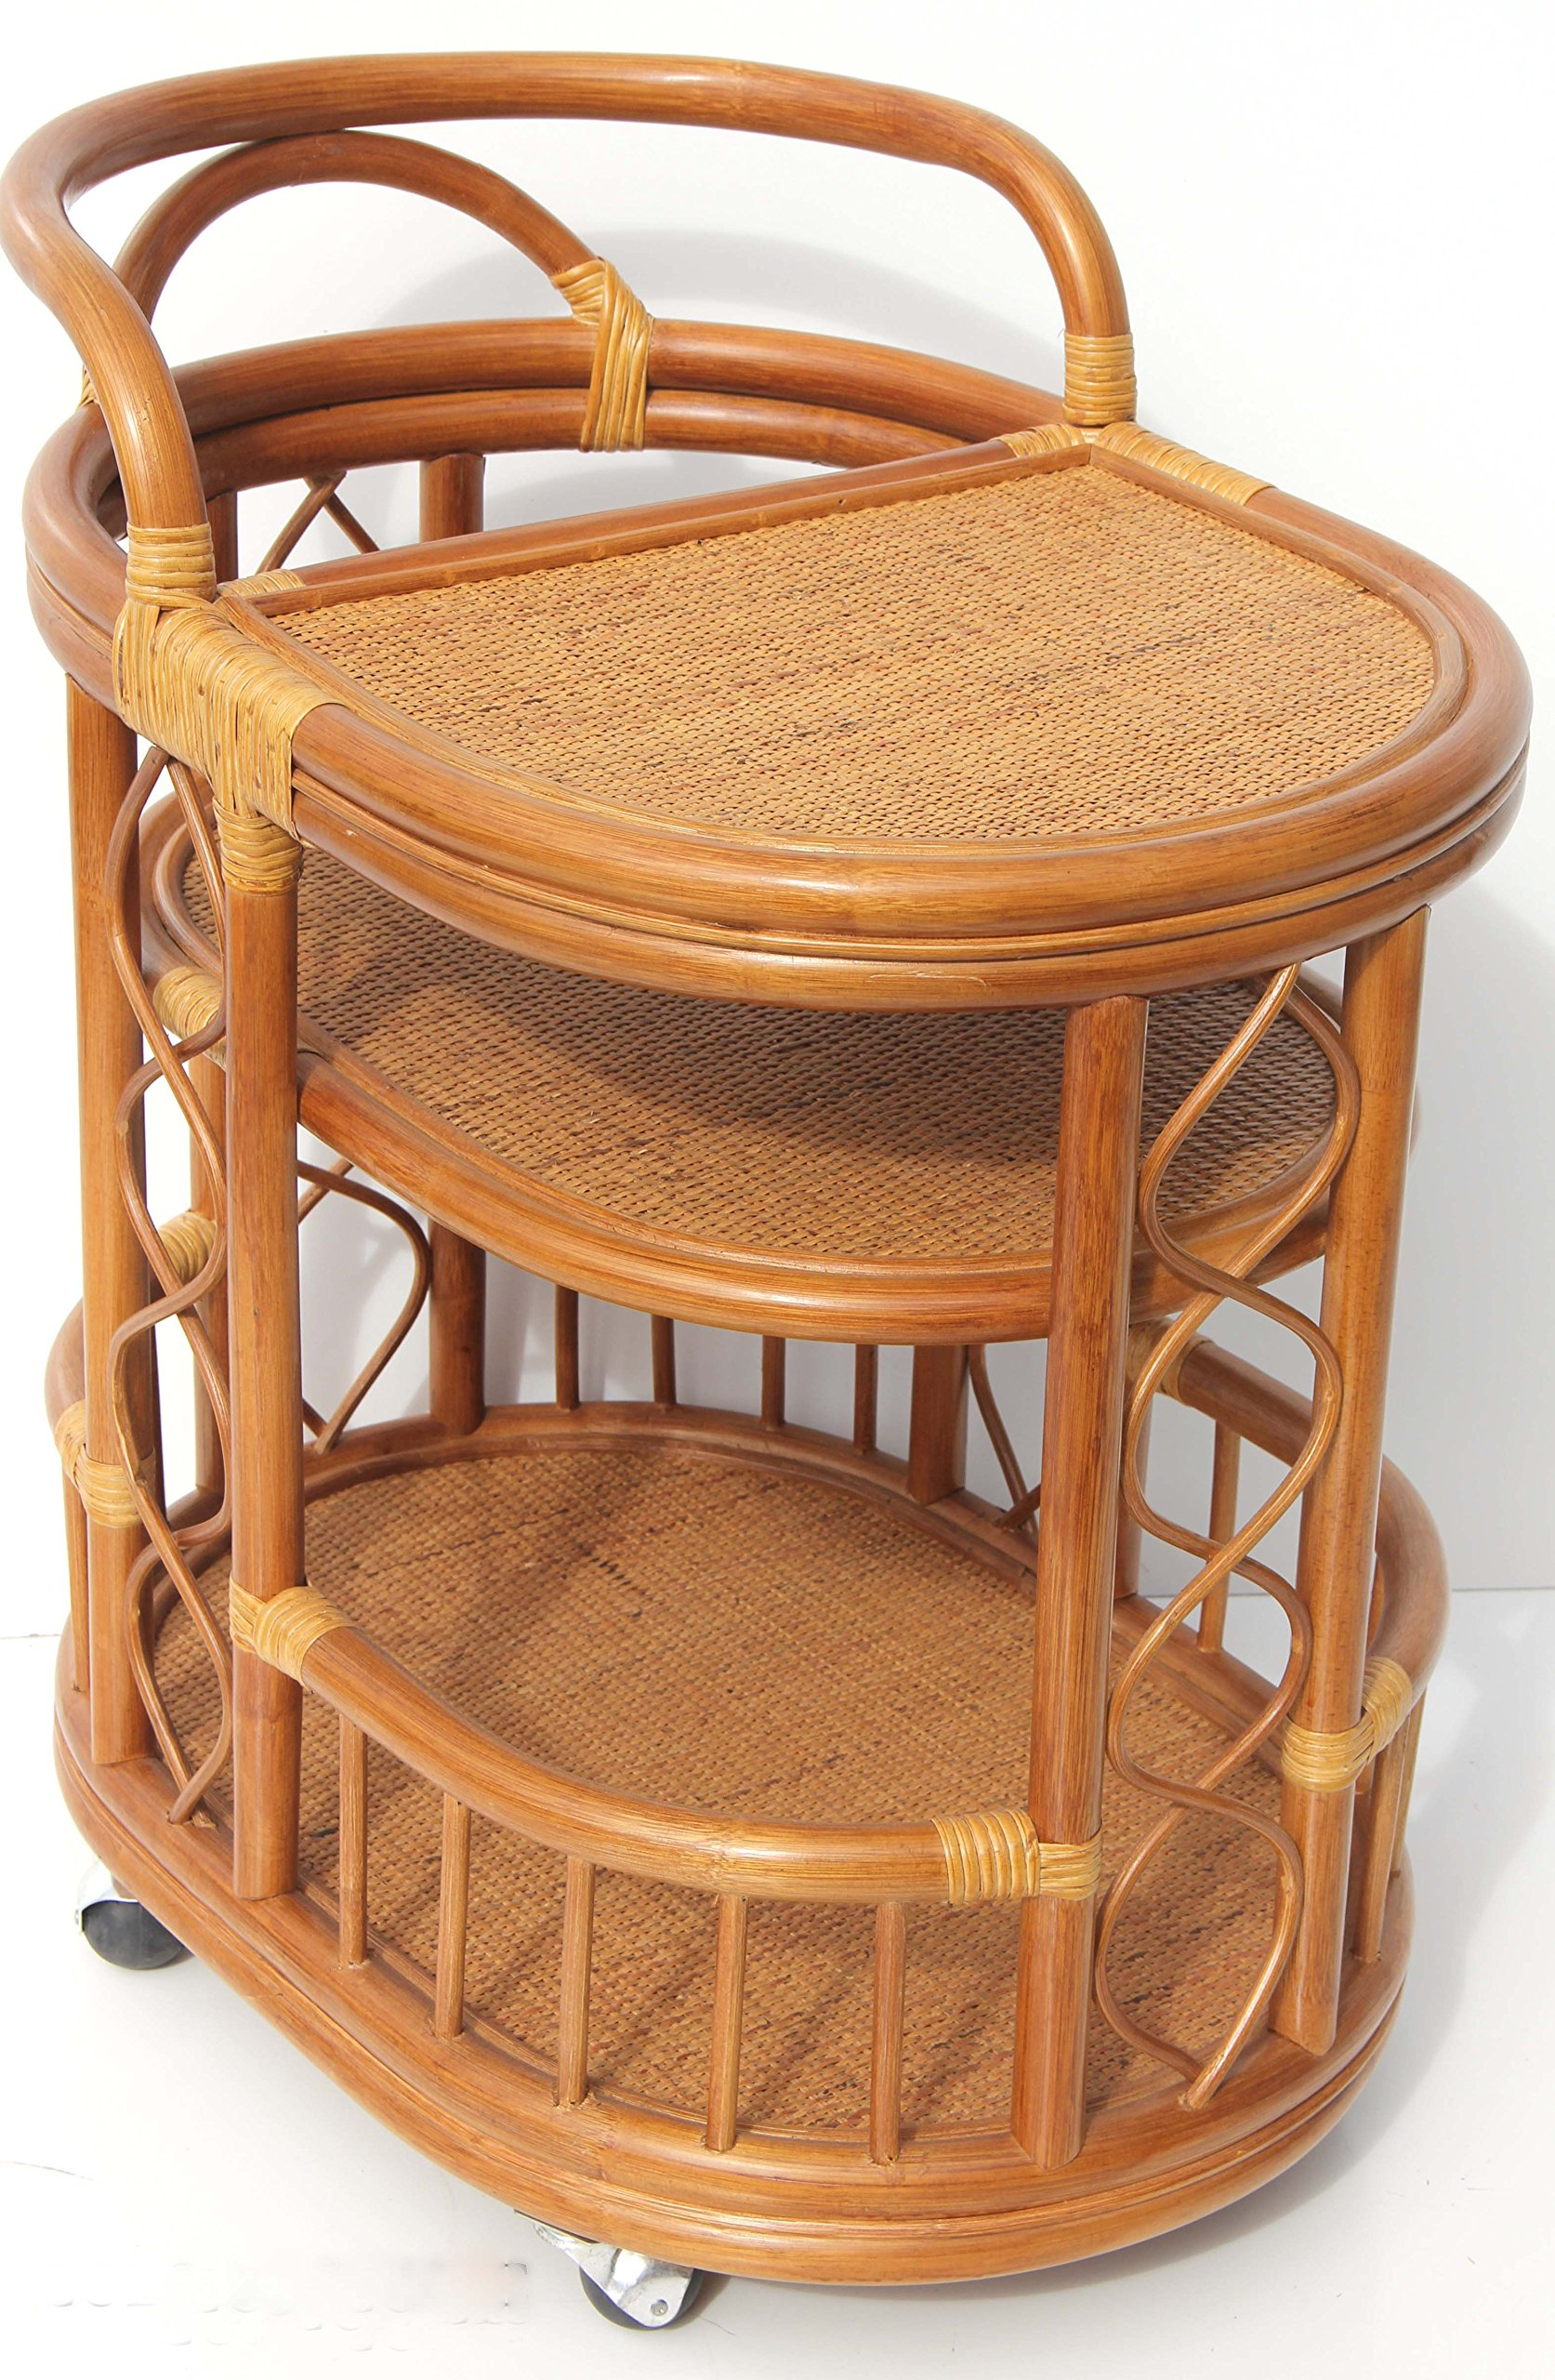 Moving Serving Cart Bar Table Natural Rattan Wicker Exclusive Handmade ECO, Cognac by SunBear Furniture (Image #1)